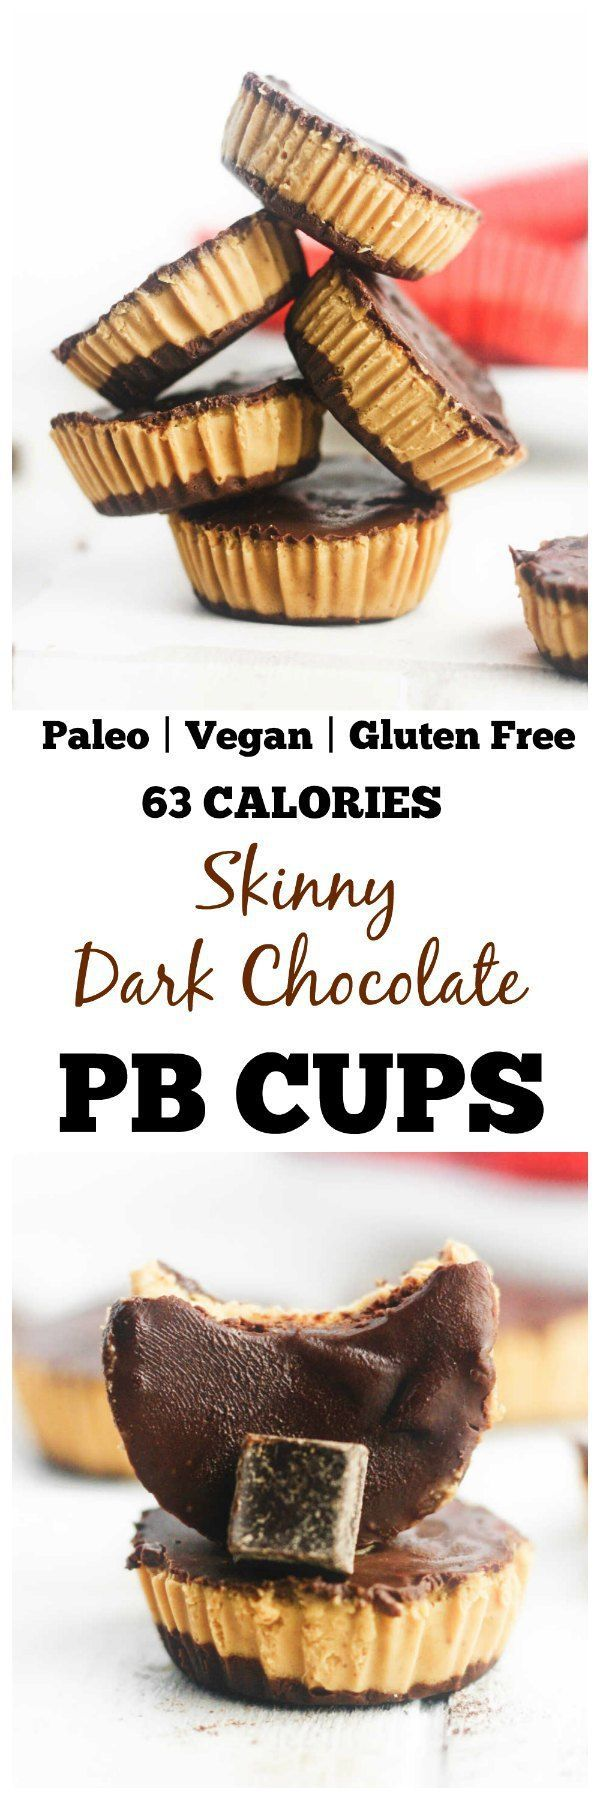 Healthy, dark chocolate peanut butter cups that are gluten free, paleo and vegan friendly. Made with PB fit powder, these make the perfect, deliciously low calorie treat! http://www.itscheatdayeveryday.com